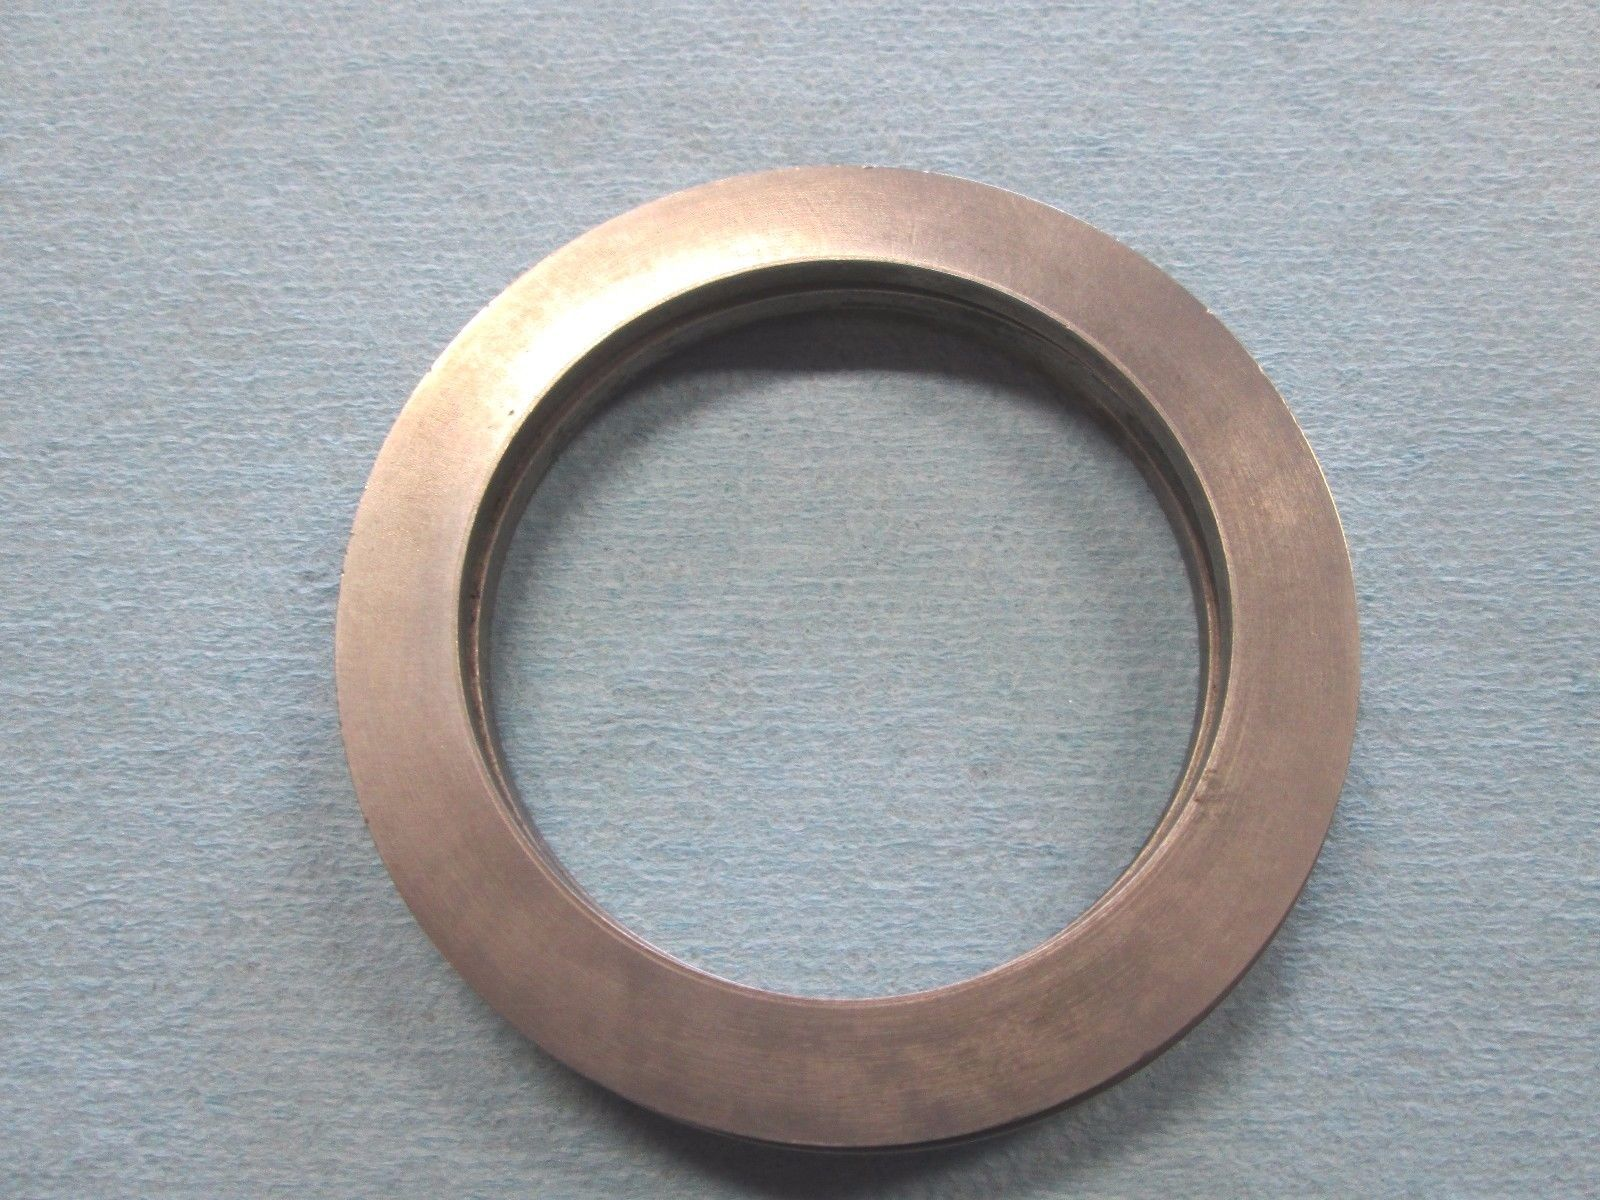 Primary image for HB1669, 391-3381-008, P37X, Spacer